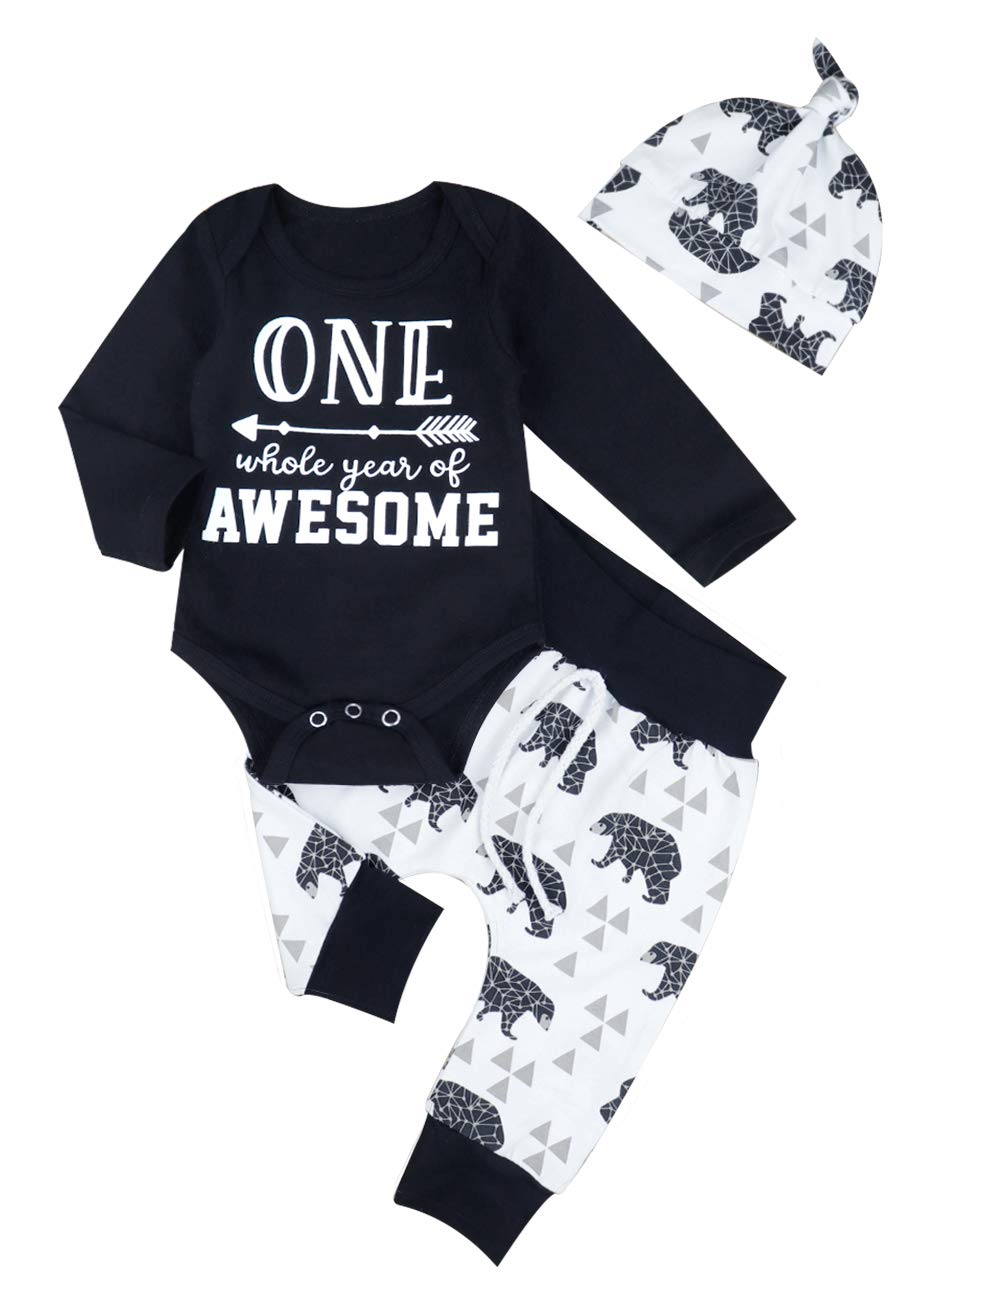 Baby Boys Girls Clothes Long Sleeve Romper One Whole Year Of Awesome Bodysuit+Bear Printed Pants+Hat 3pc Outfits Set(3-6M)